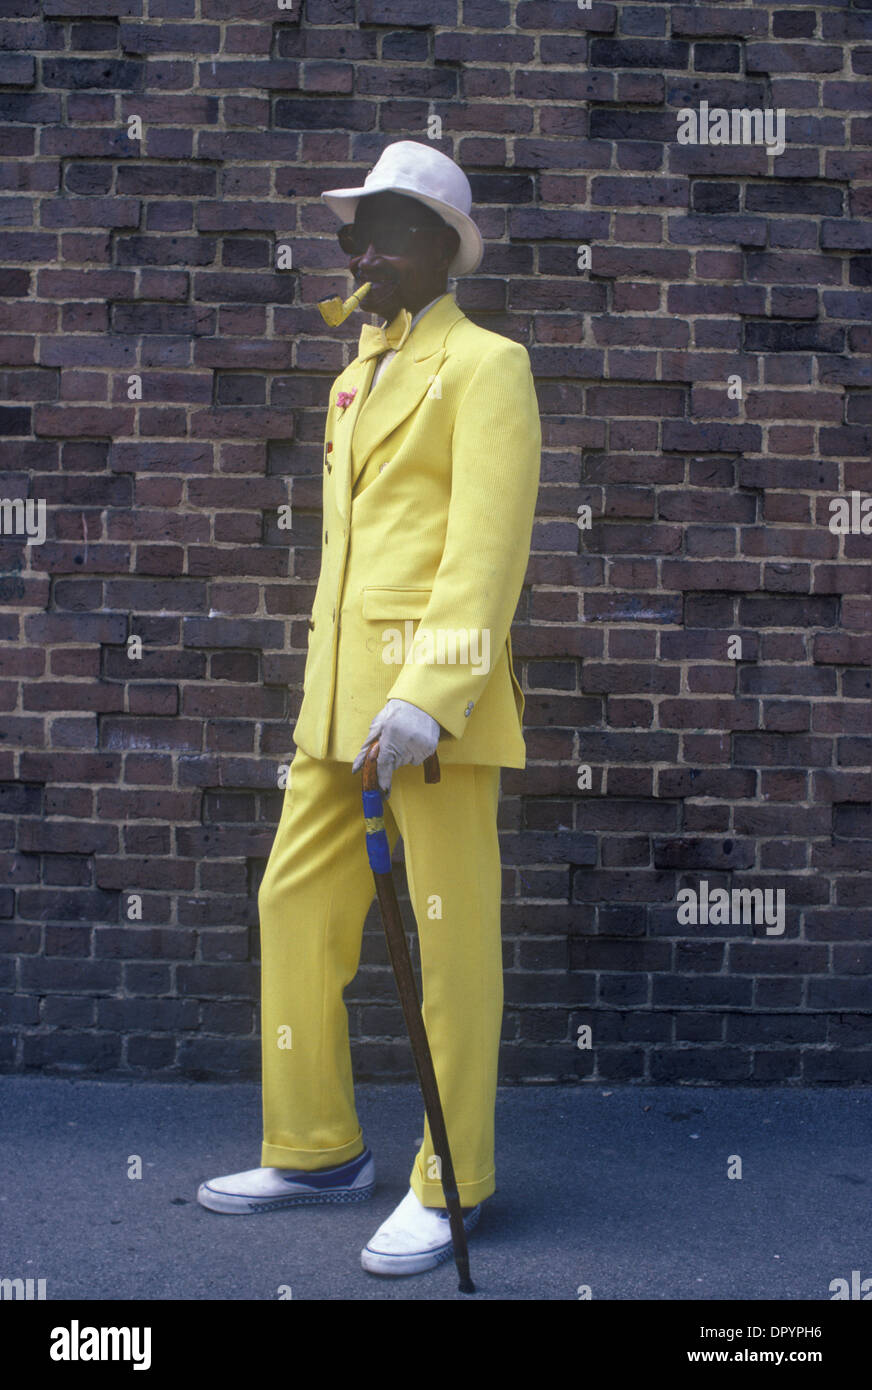 Dandy male wearing a yellow suit and smoking a yellow pipe. London Uk. HOMER SYKES - Stock Image